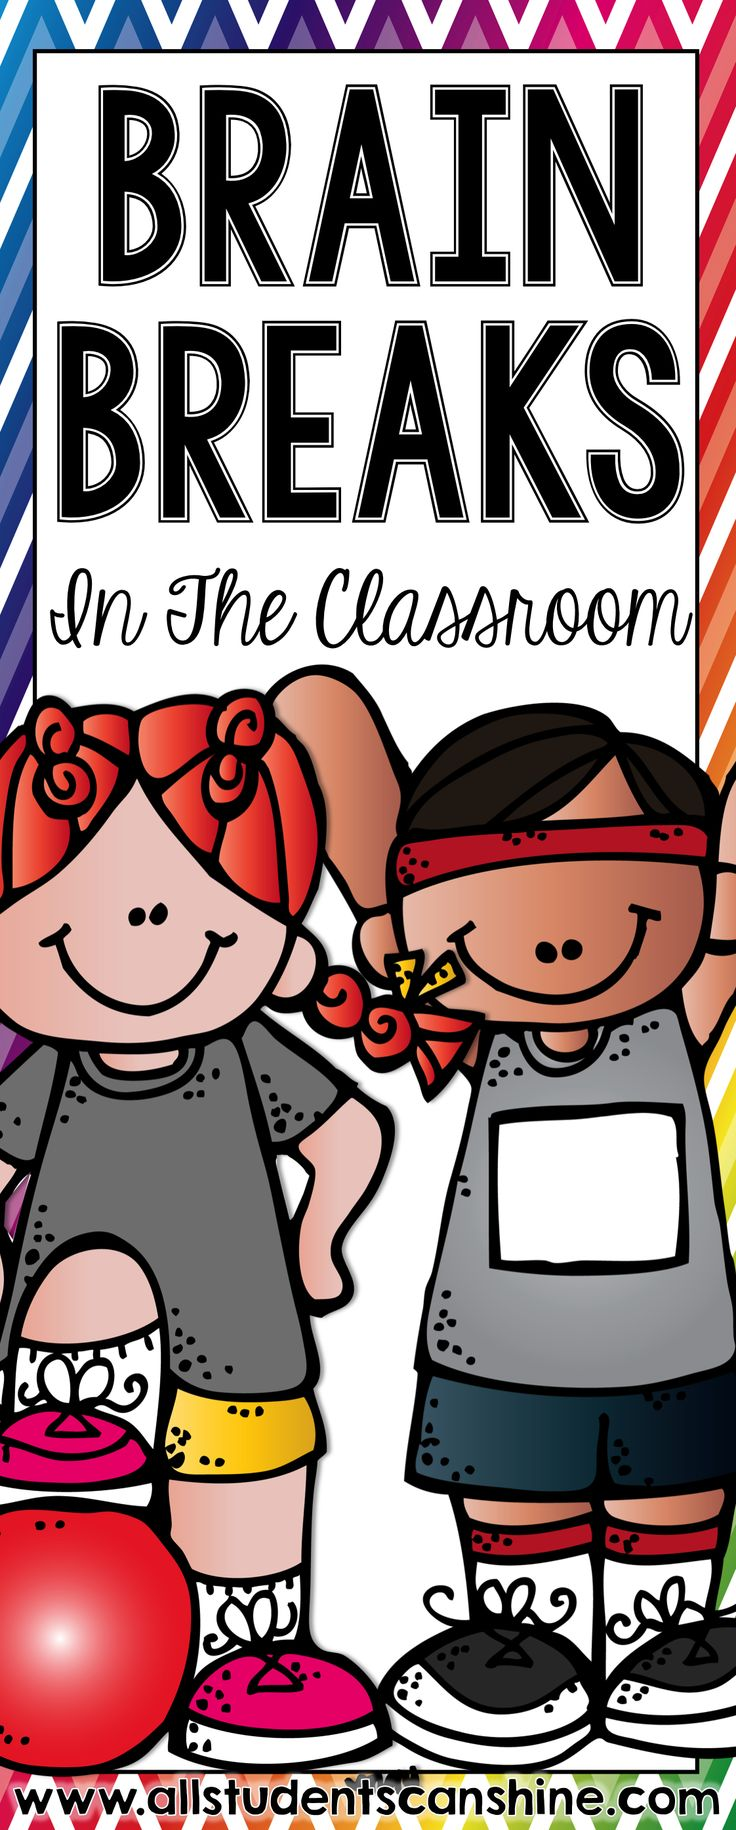 Brain breaks in the classroom. This blog post is PACKED with tips and ideas for making brain breaks successful in your classroom!